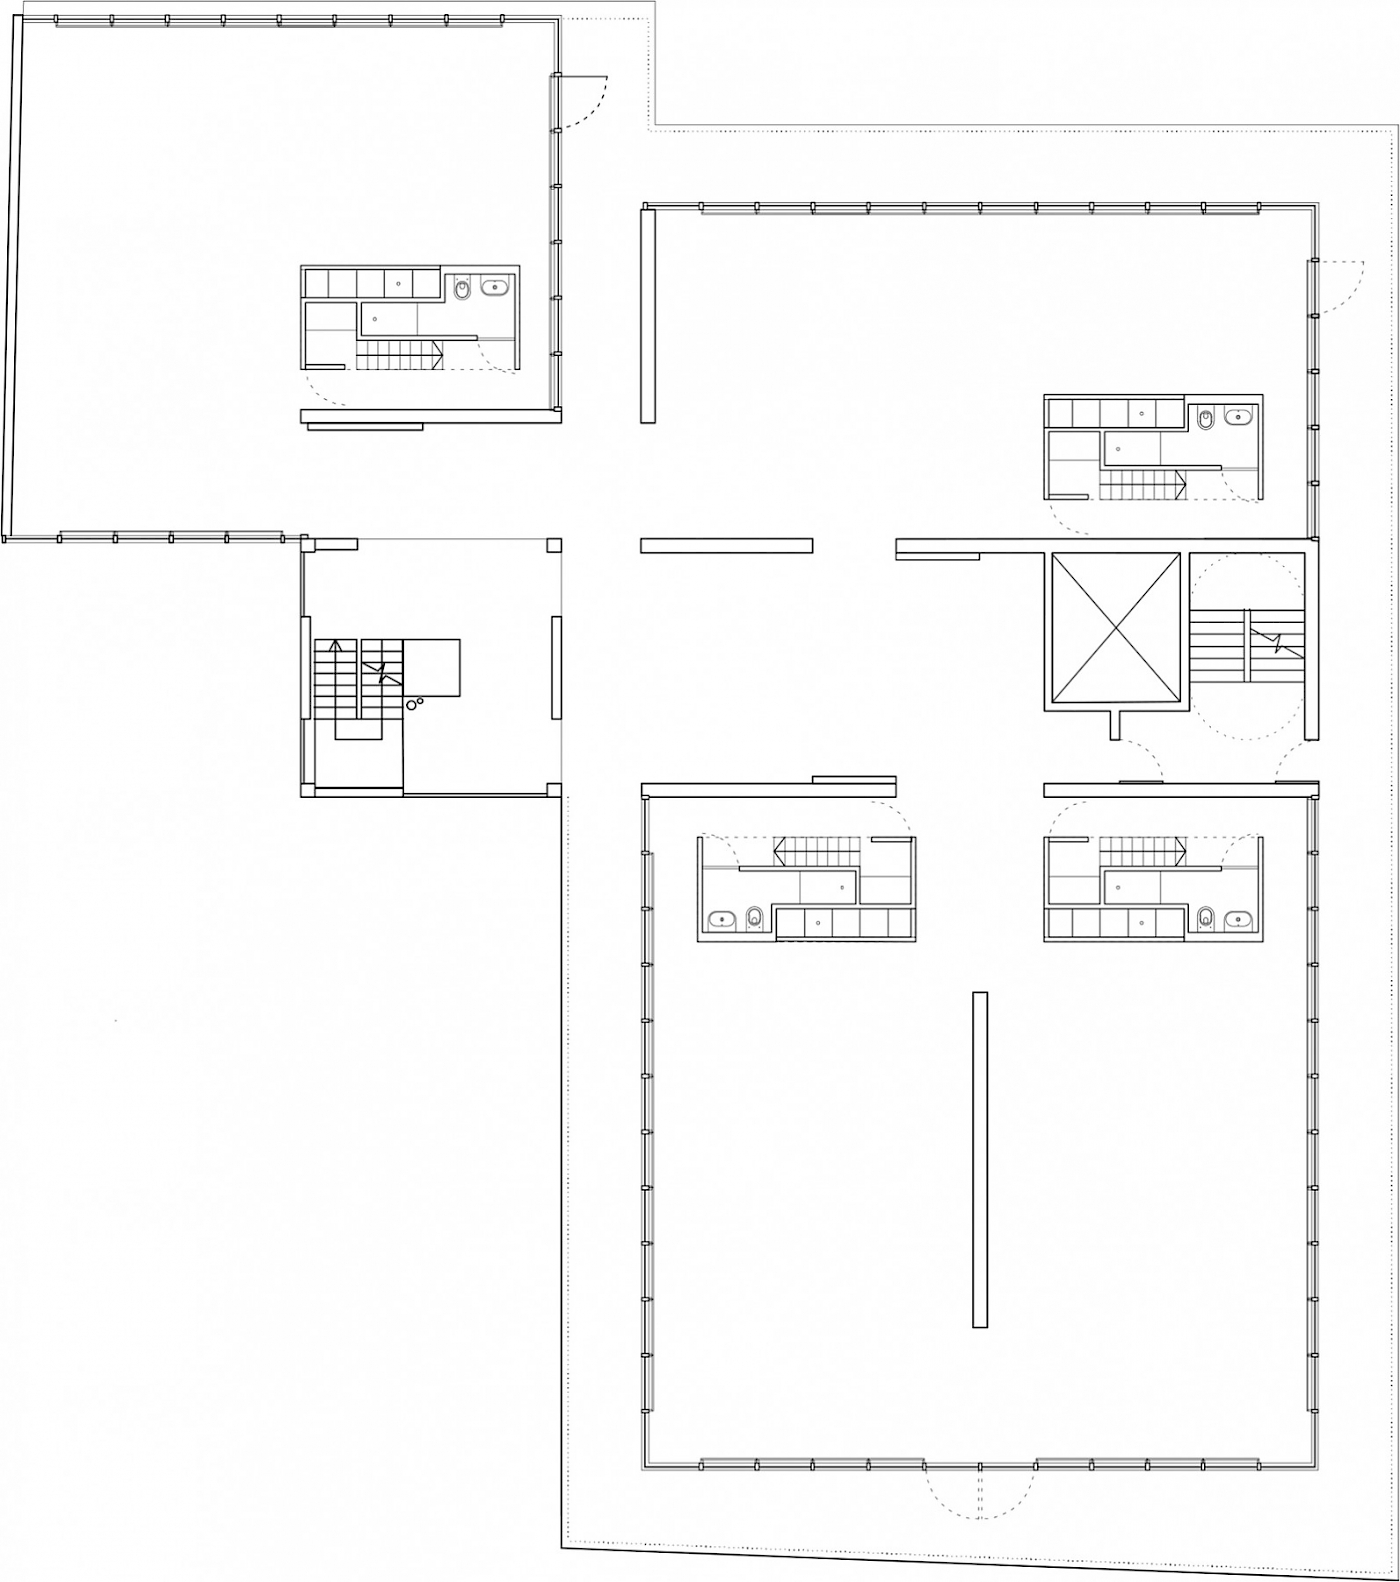 1st Floor Plan in Gallery Mode